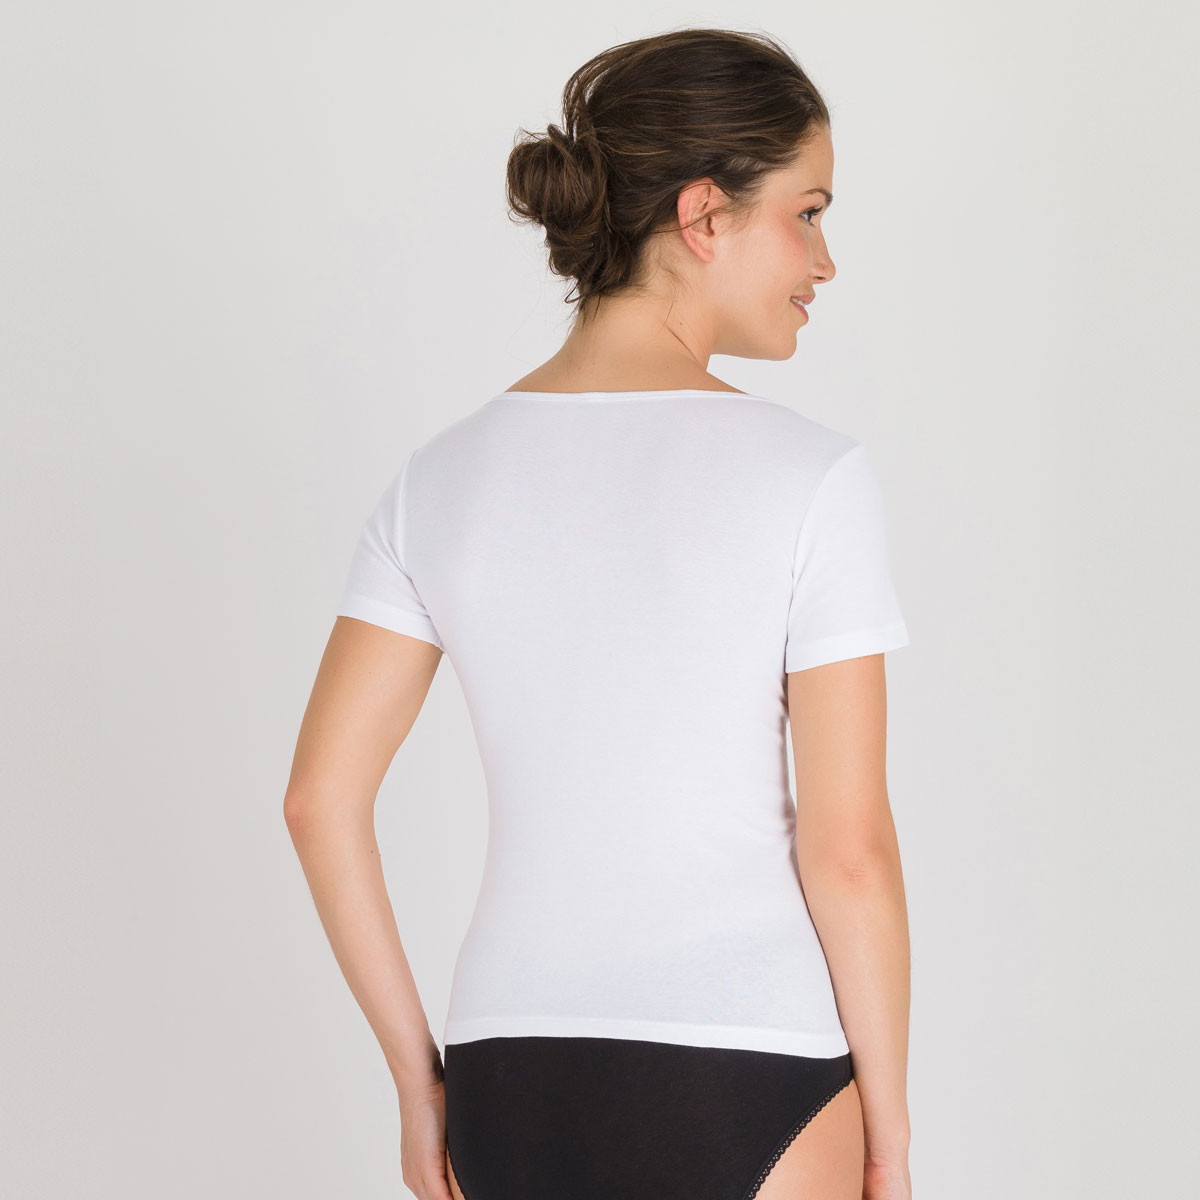 Top manches courtes blanc - Cotton Liberty-PLAYTEX